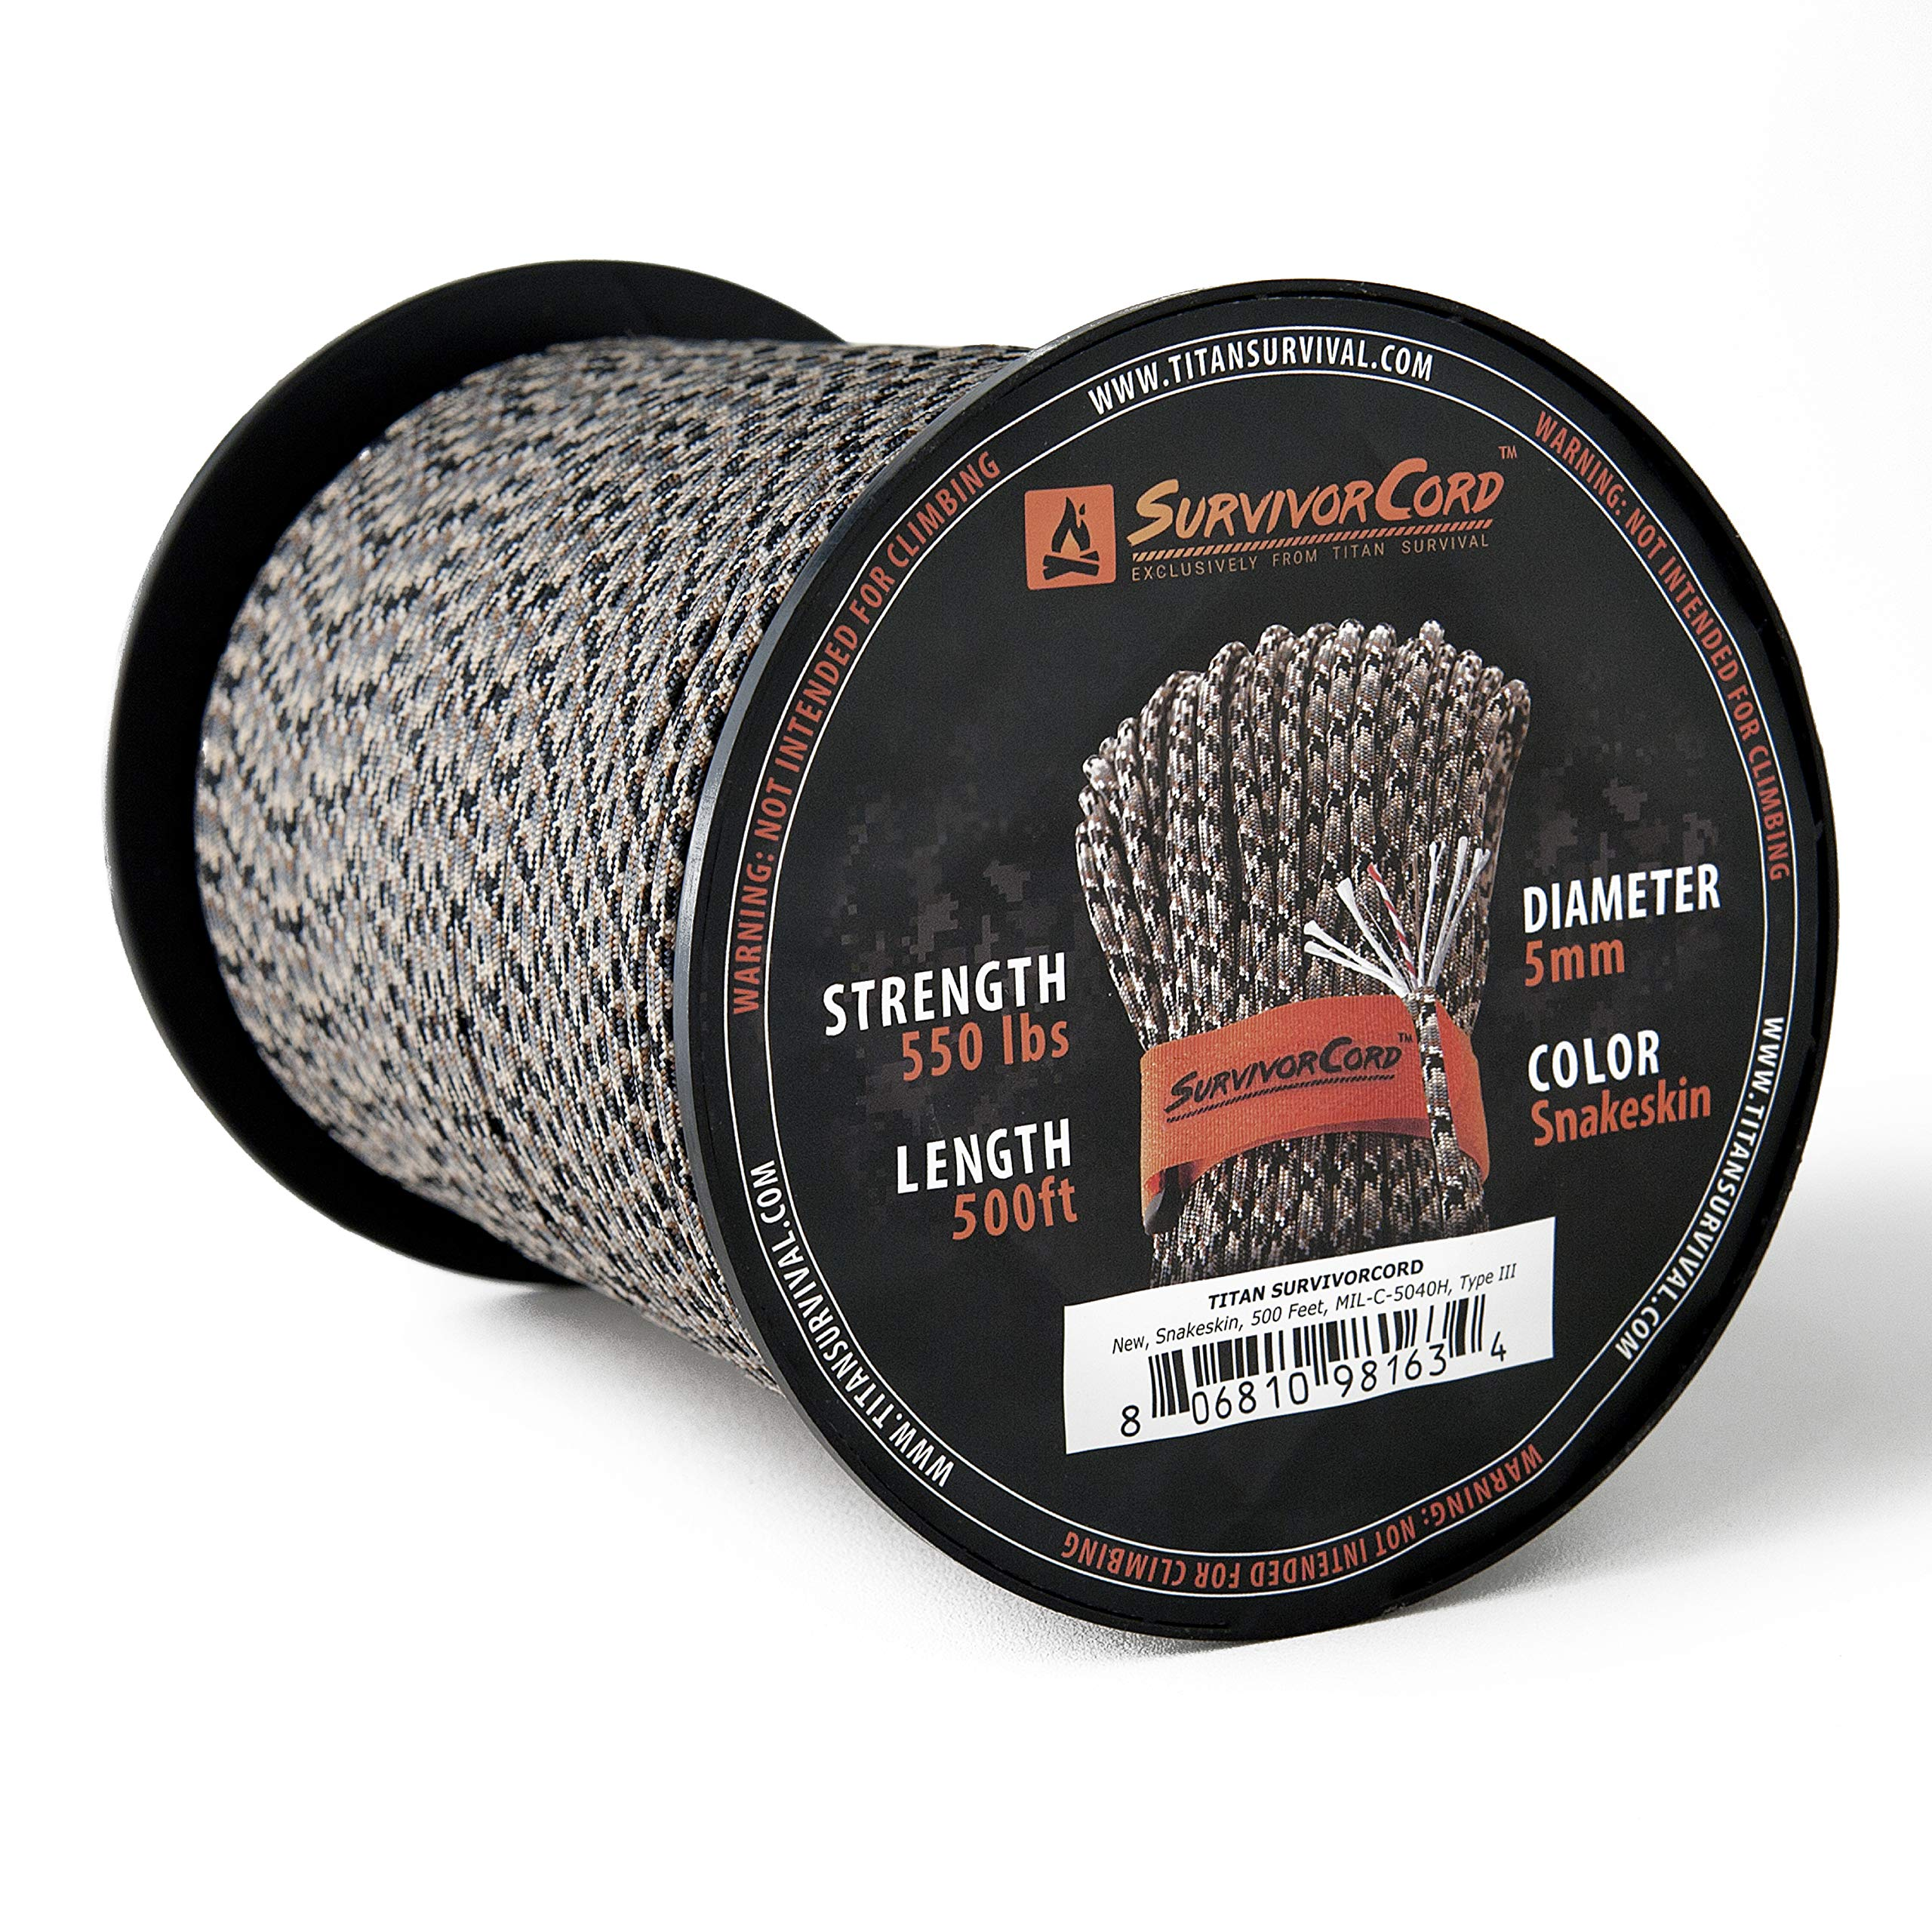 Titan SurvivorCord Spool | Snakeskin, 500 FEET - Patented MIL-SPEC 550 Paracord (3/16'' Diameter) with Integrated Fishing Line, Fire-Starter, and Utility Wire. Free Paracord Project eBooks Included.